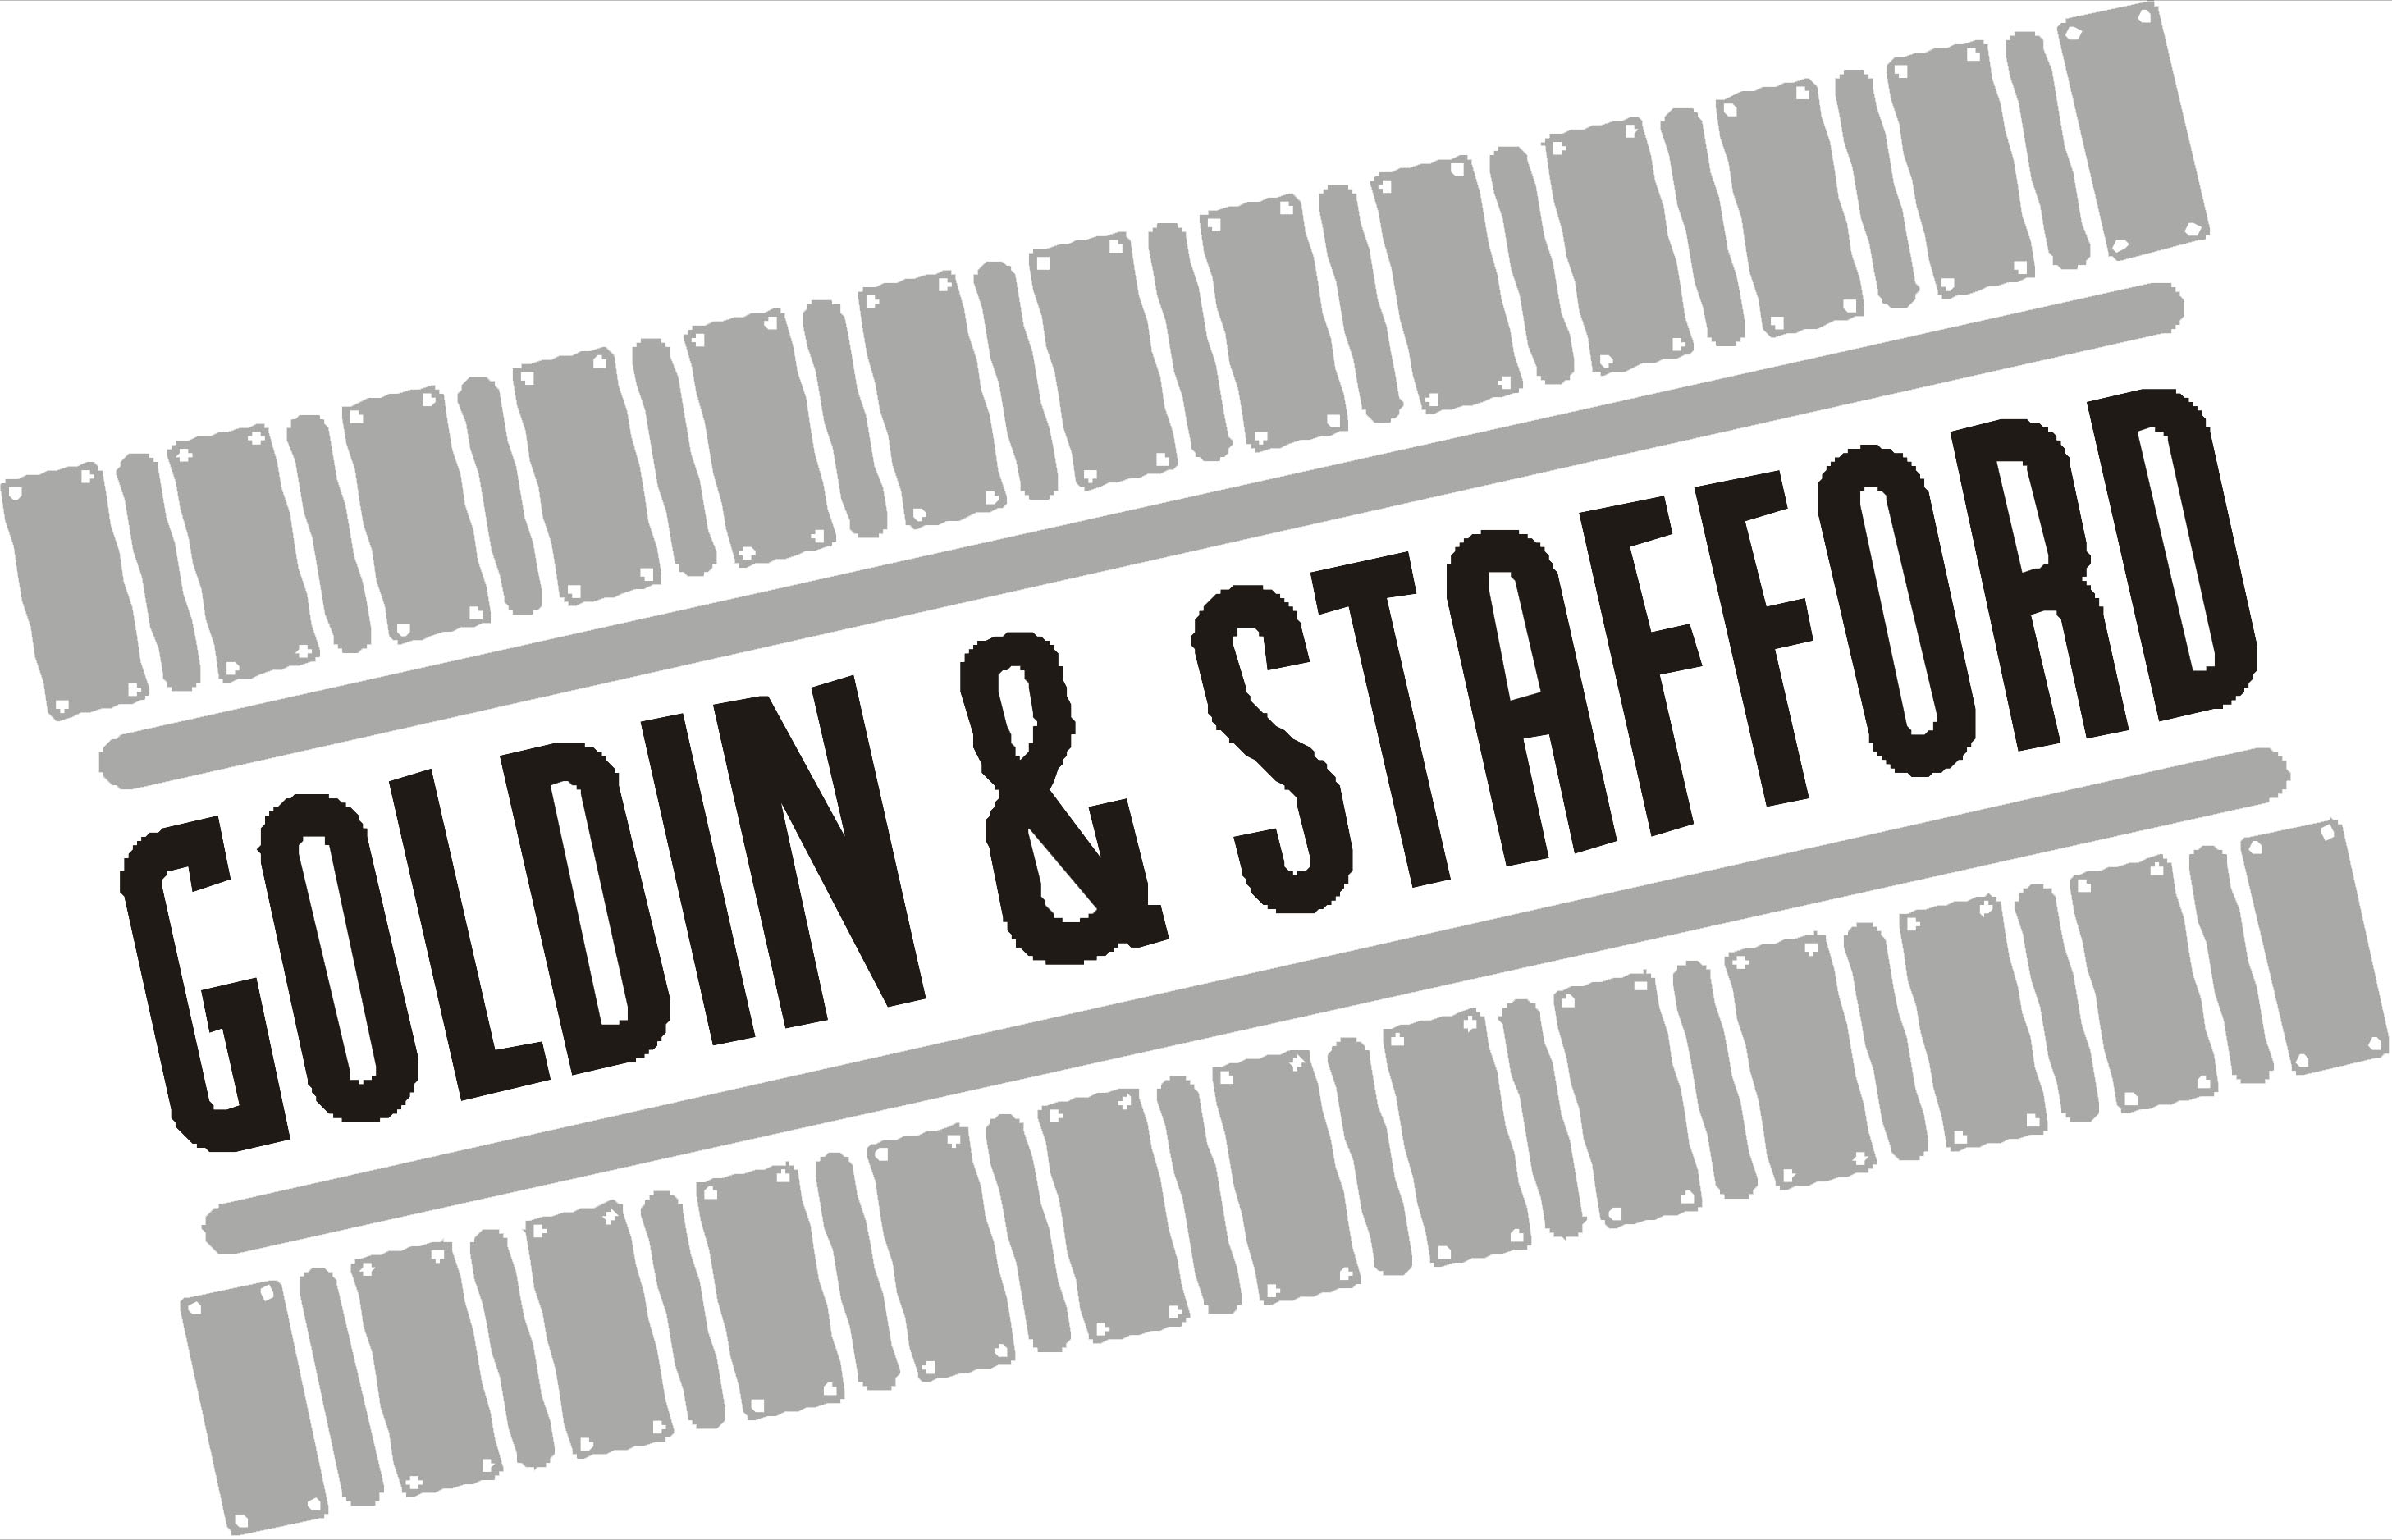 Goldin and Stafford